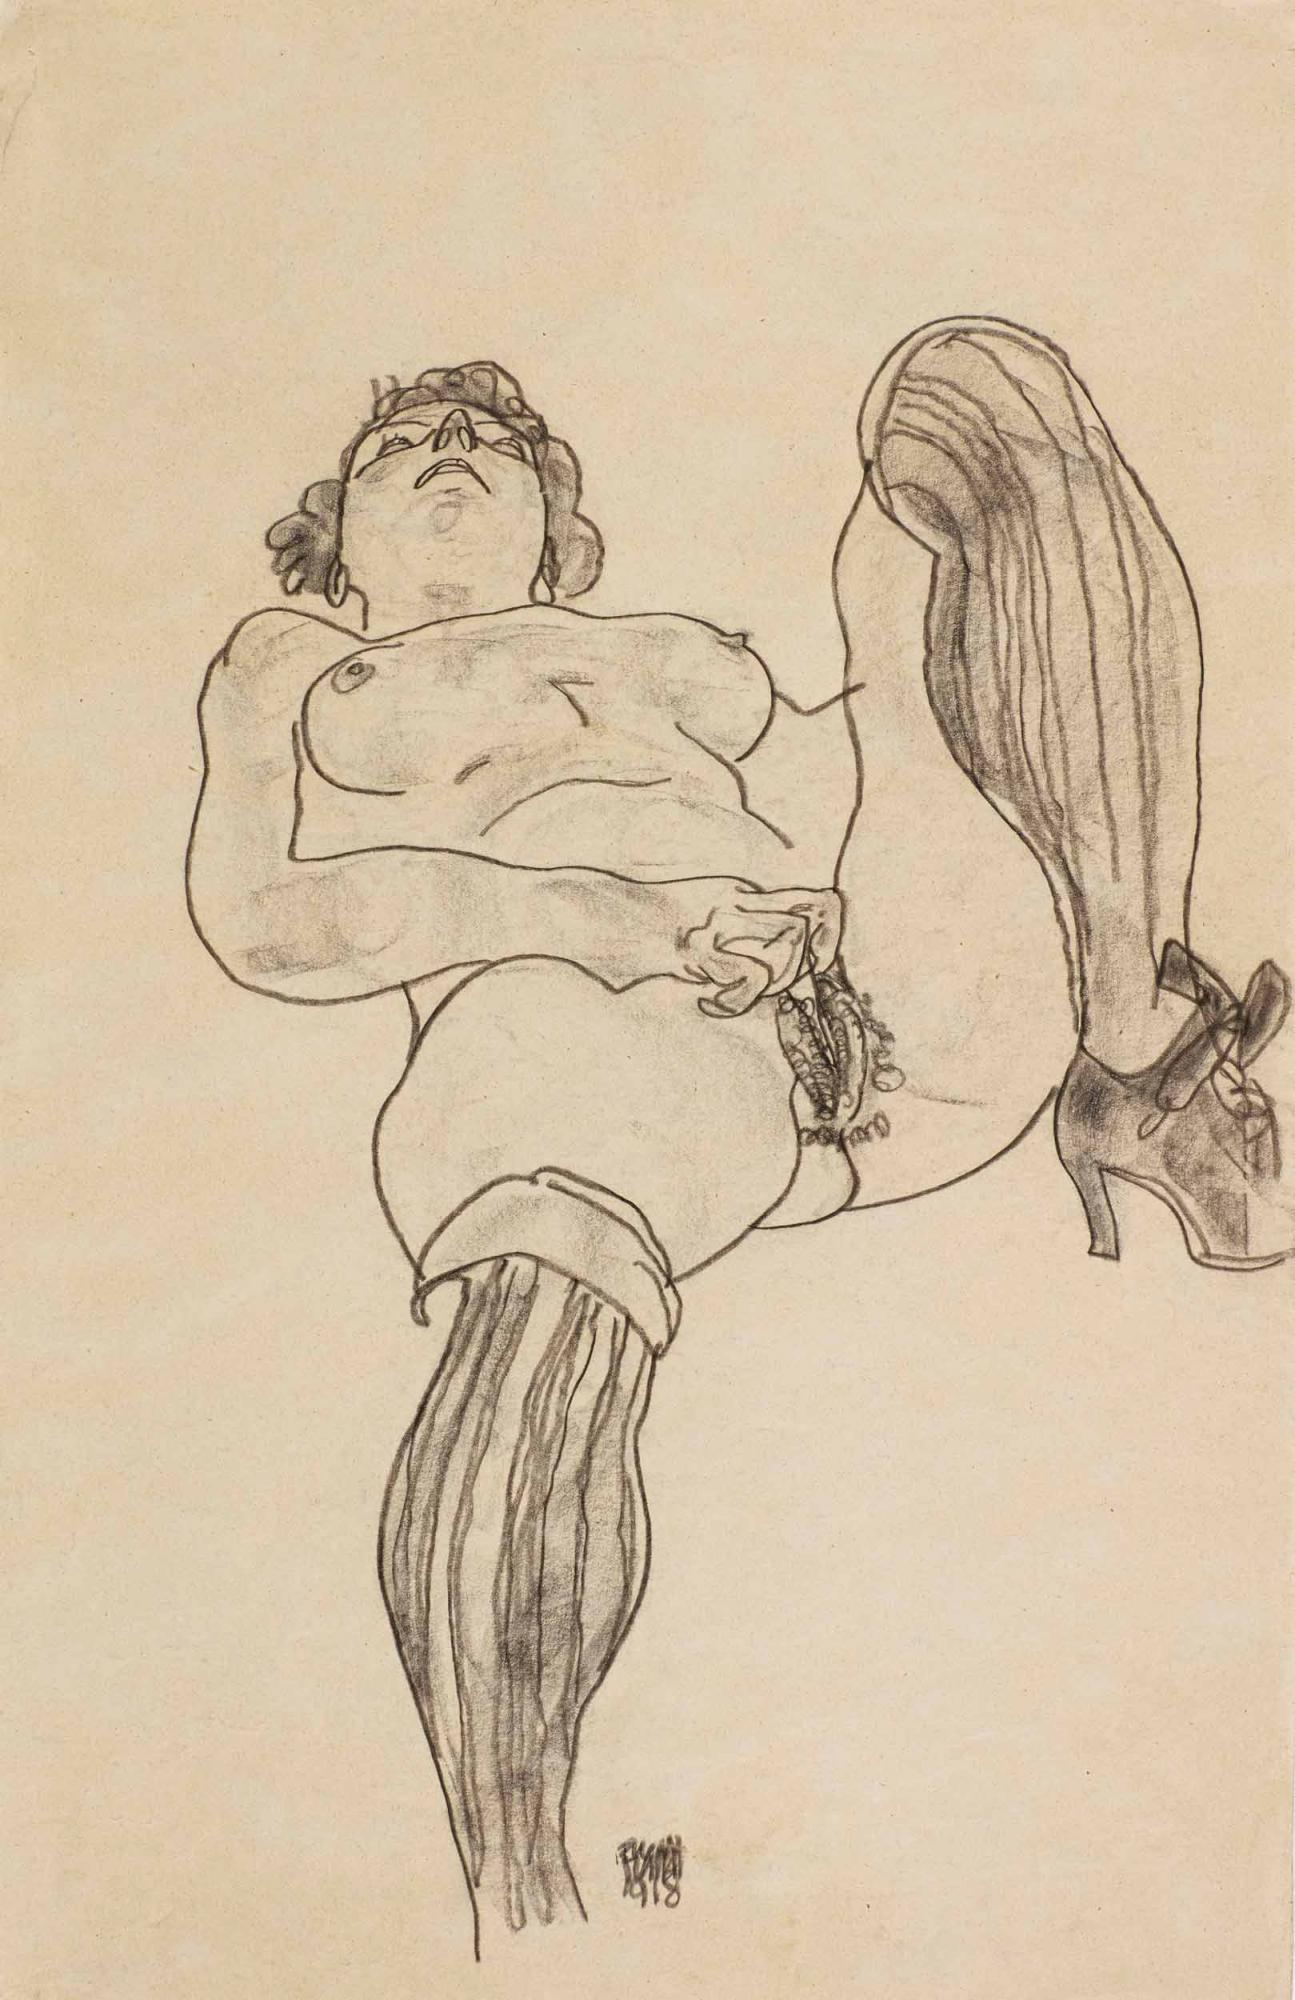 Lot-15-Egon-Schiele-LIEGENDER-AKT-MIT-GESTREIFTEN-STRMPFEN-RECLINING-NUDE-WITH-STRIPED-STOCKINGS.jpg